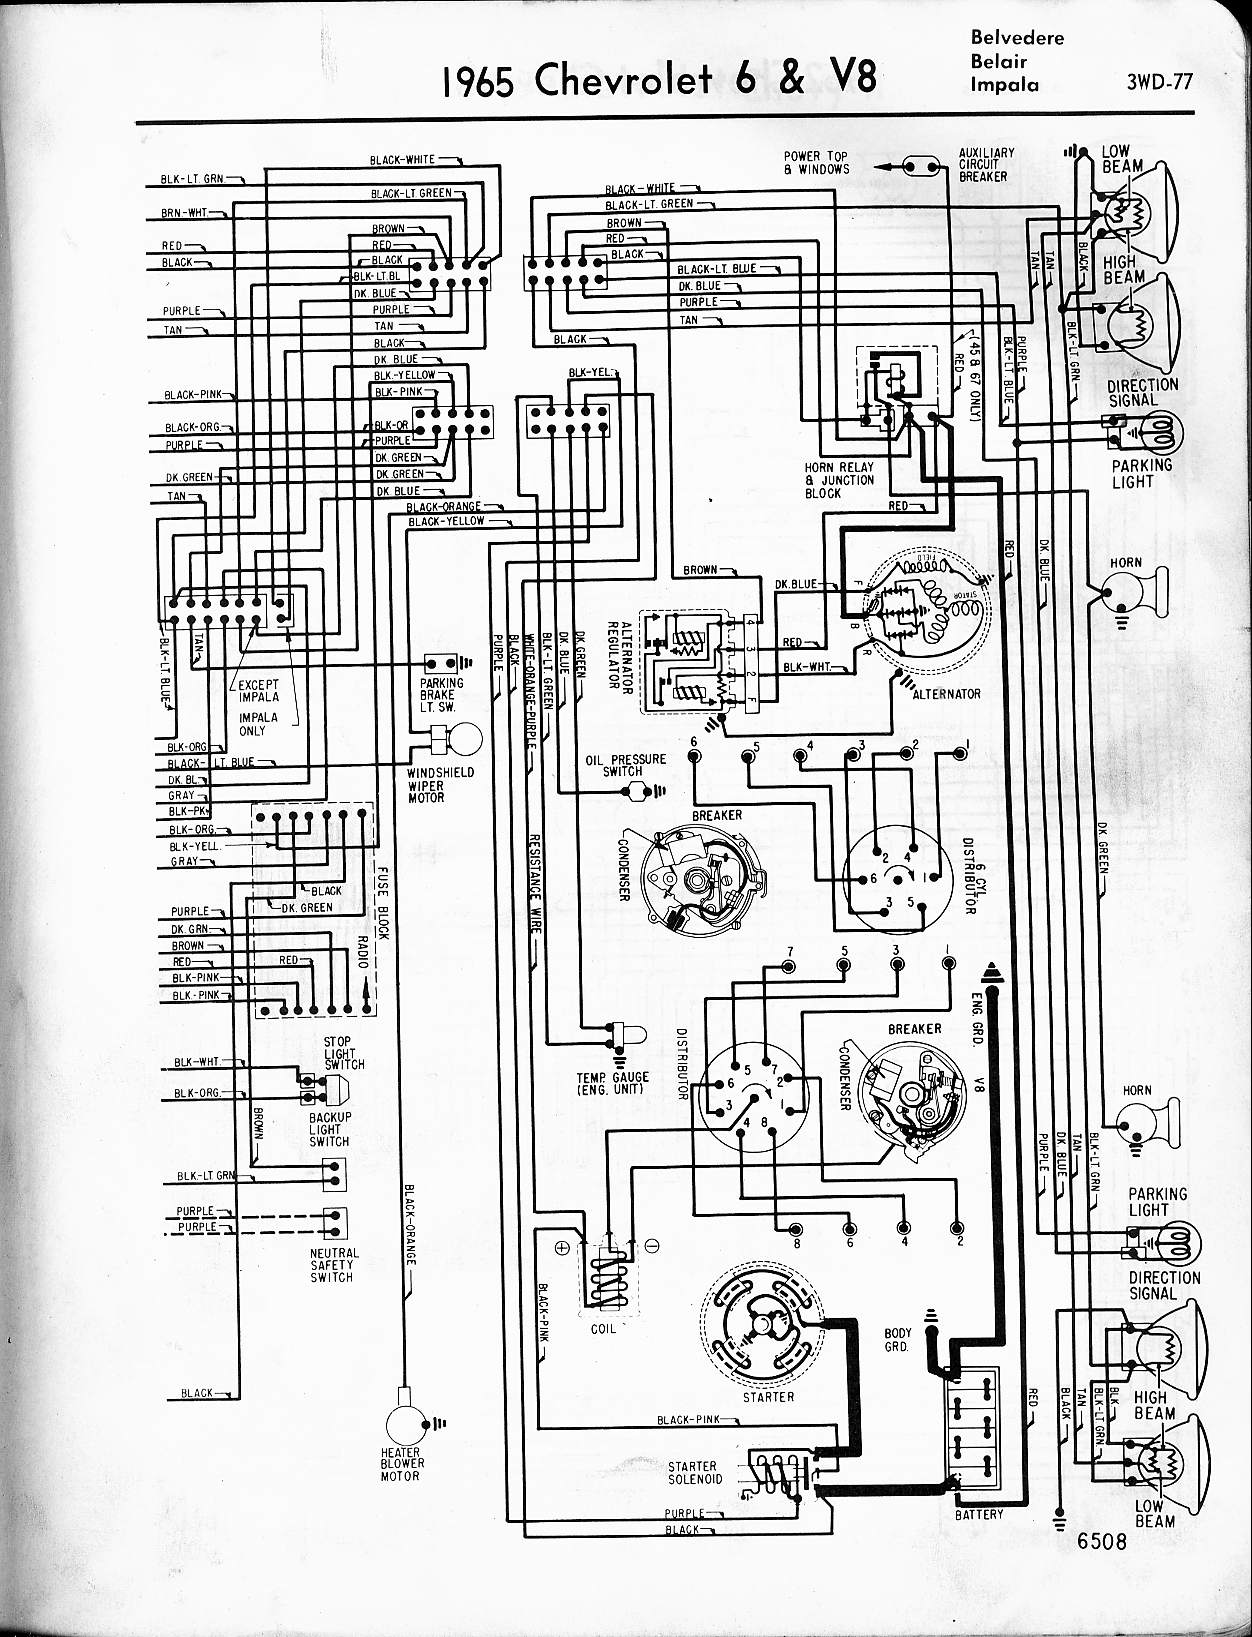 MWireChev65_3WD 077 1970 chevy truck fuse block diagram wiring diagram simonand 1985 Chevy Truck Wiring Harness at webbmarketing.co